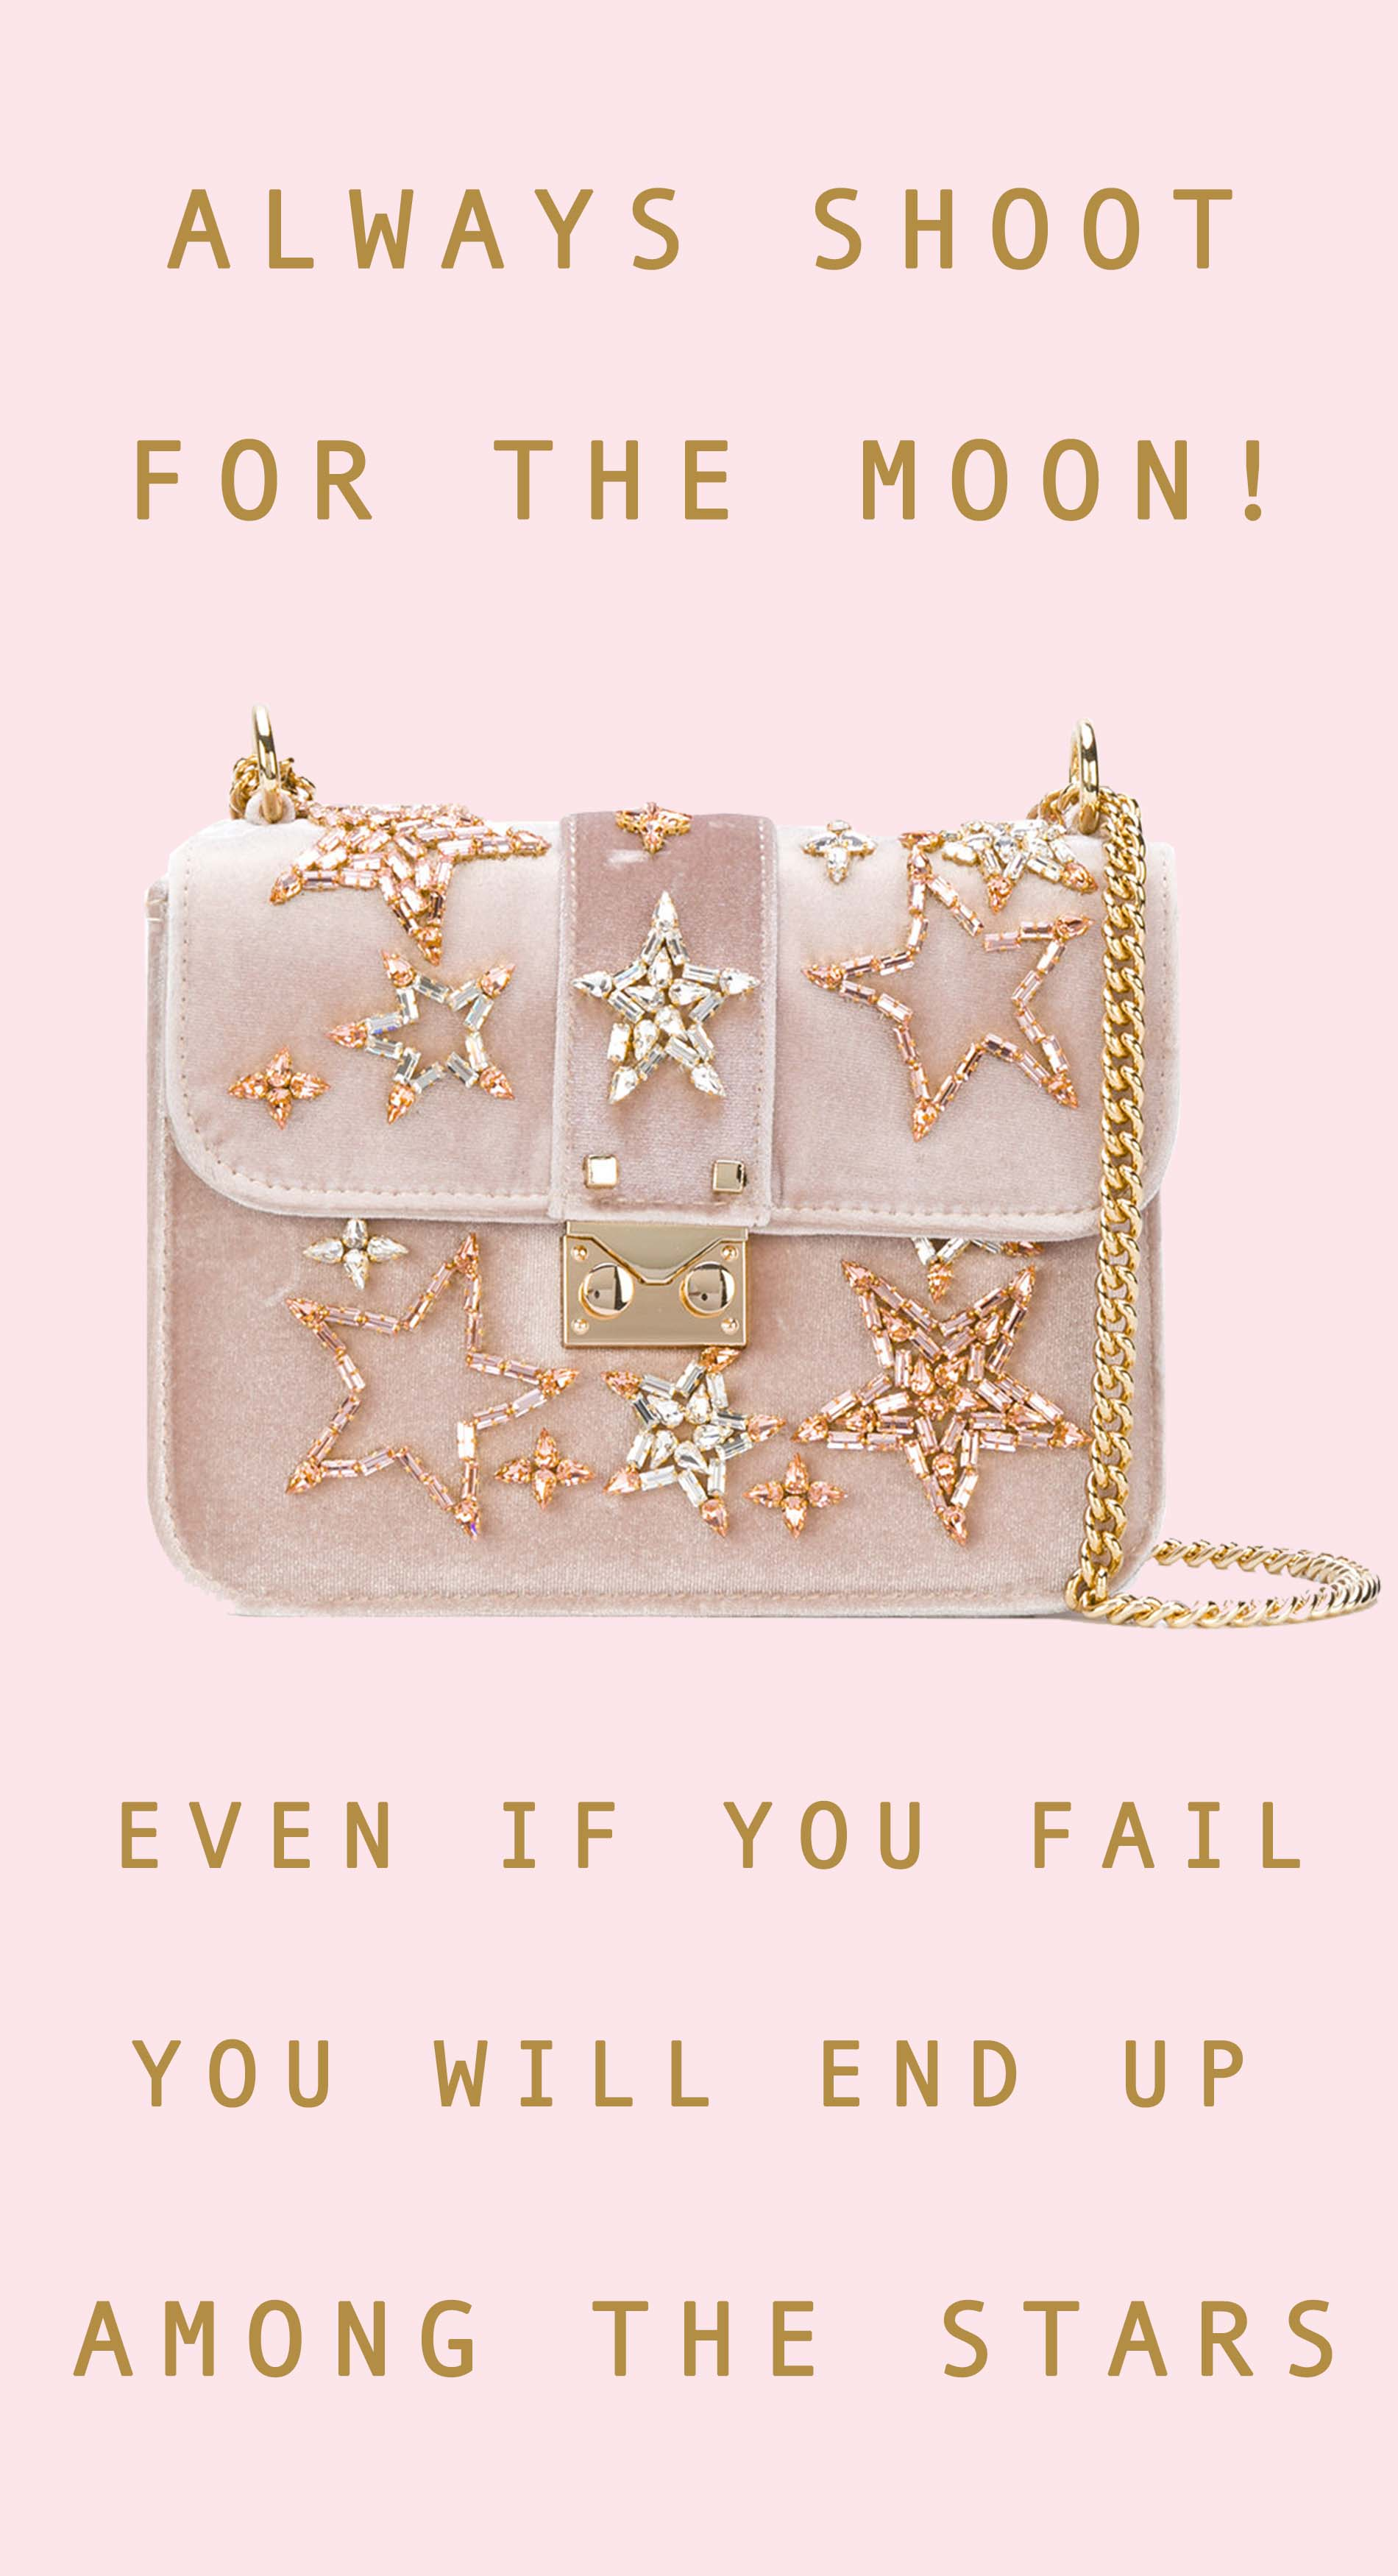 Live Gold Quotes Beauteous Pink And Gold Quotes And Pink Bags  Brunette From Wall Street